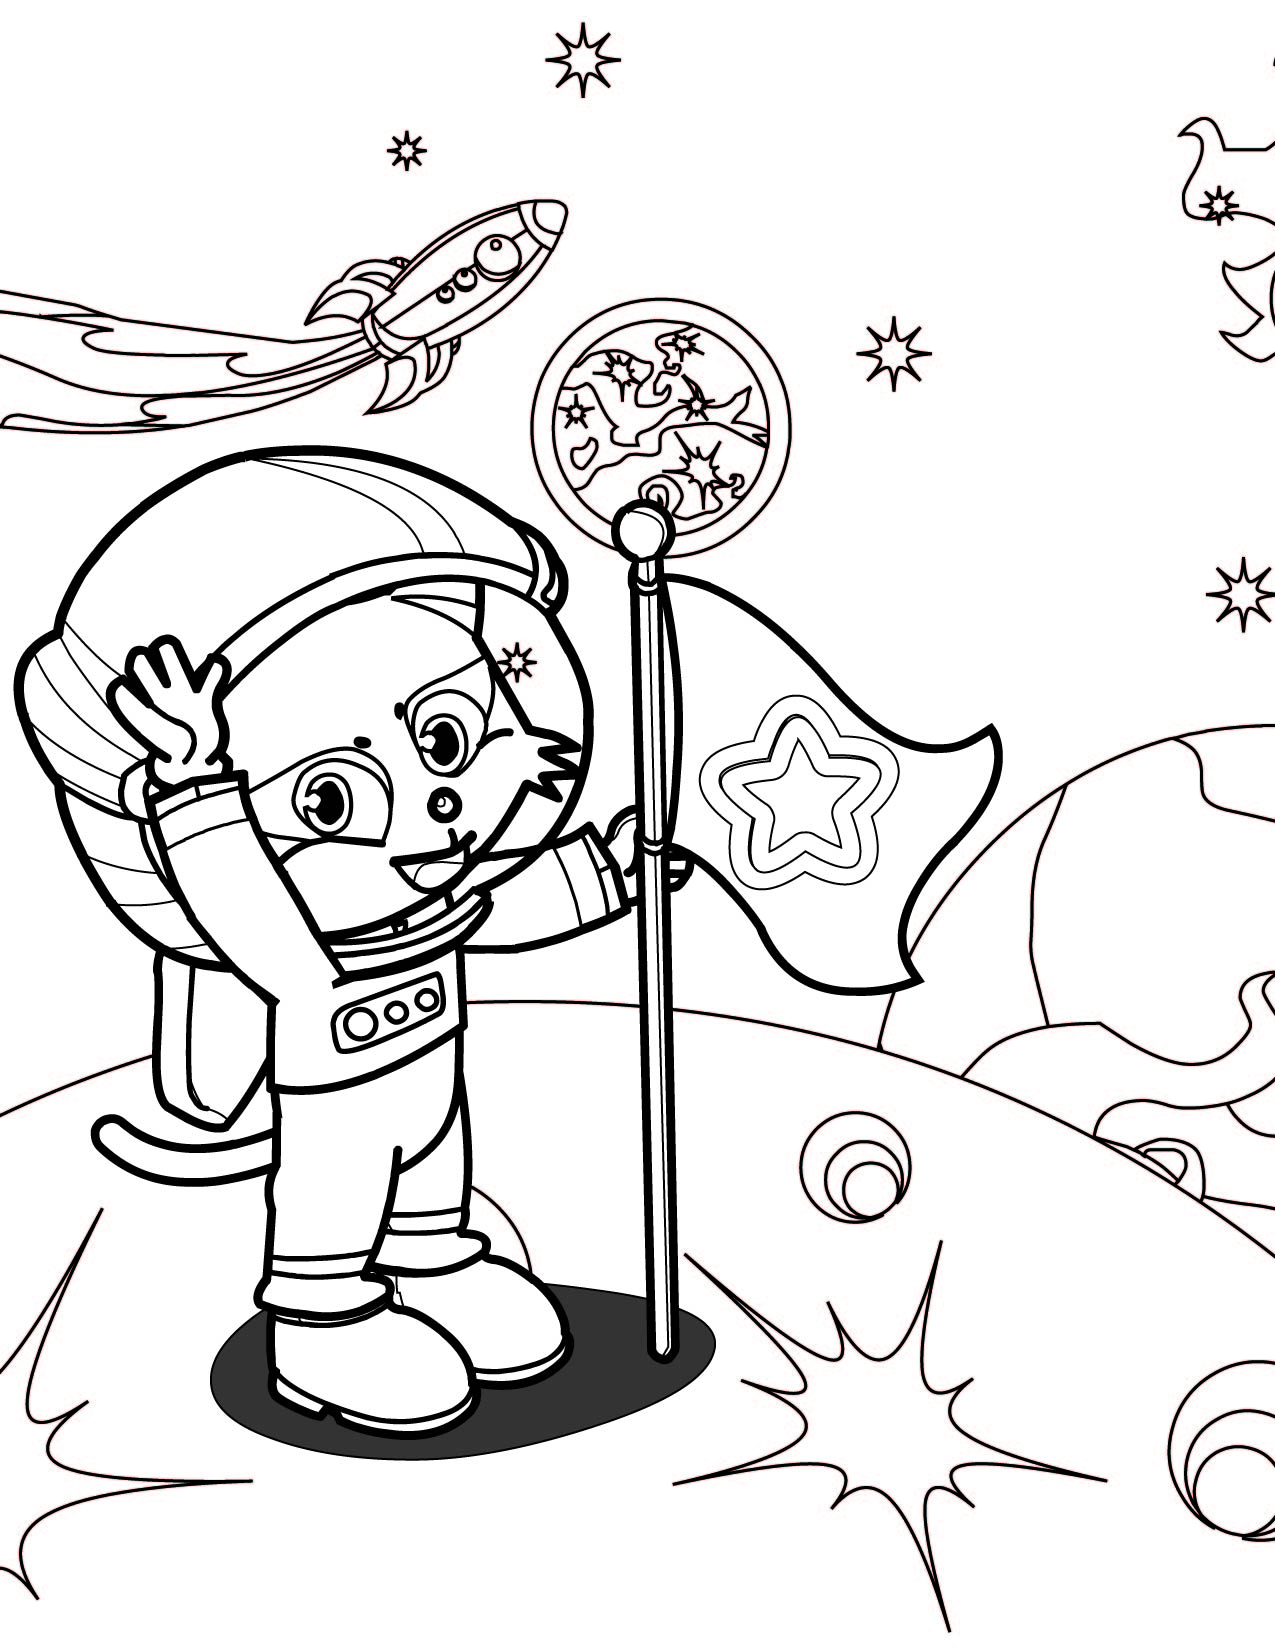 astronaut suit coloring sheet - photo #40